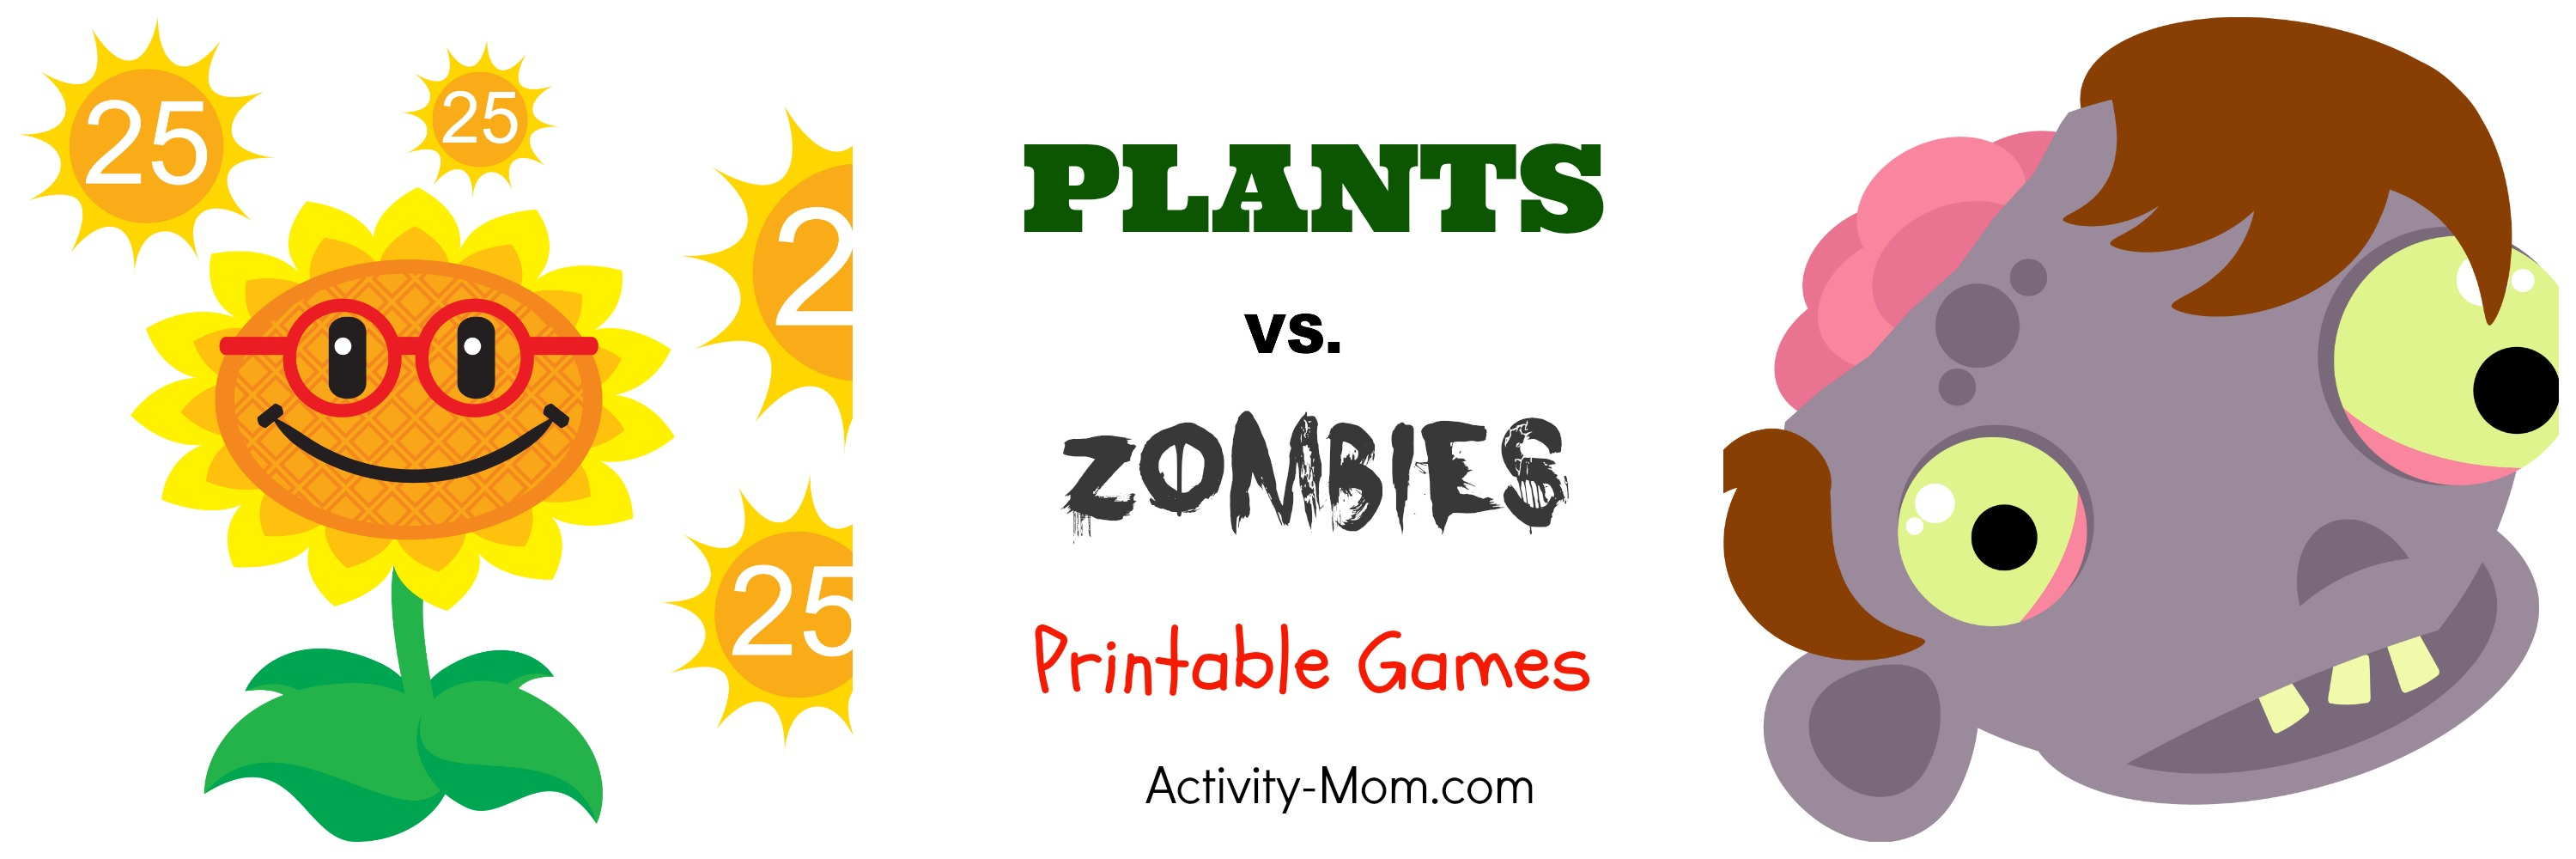 Plants vs. Zombies Themed Games (printable)